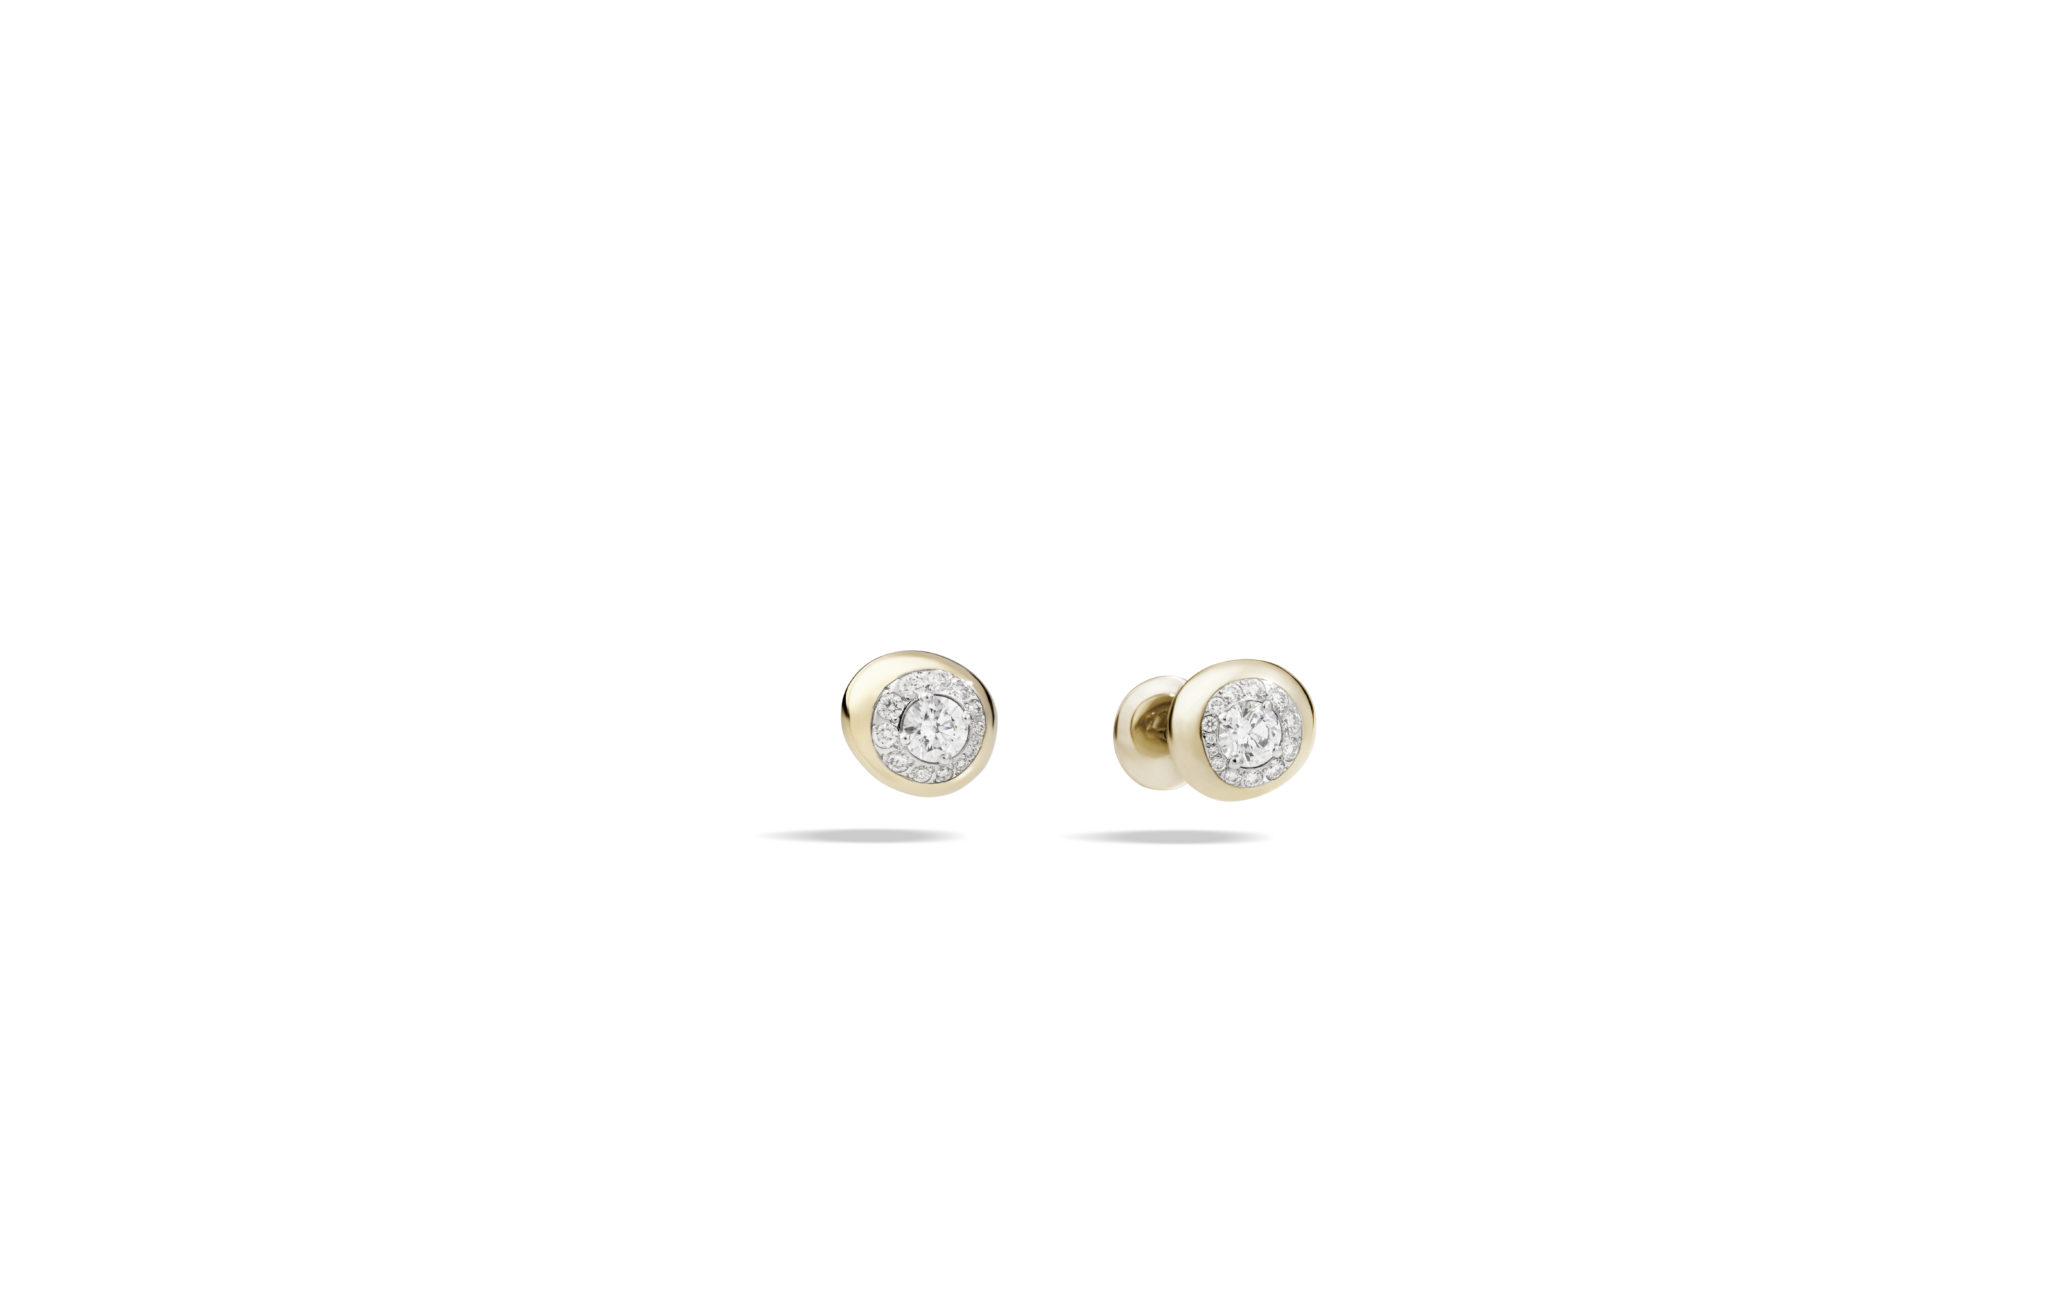 Nuvola earrings rose gold with diamonds by Pomellato